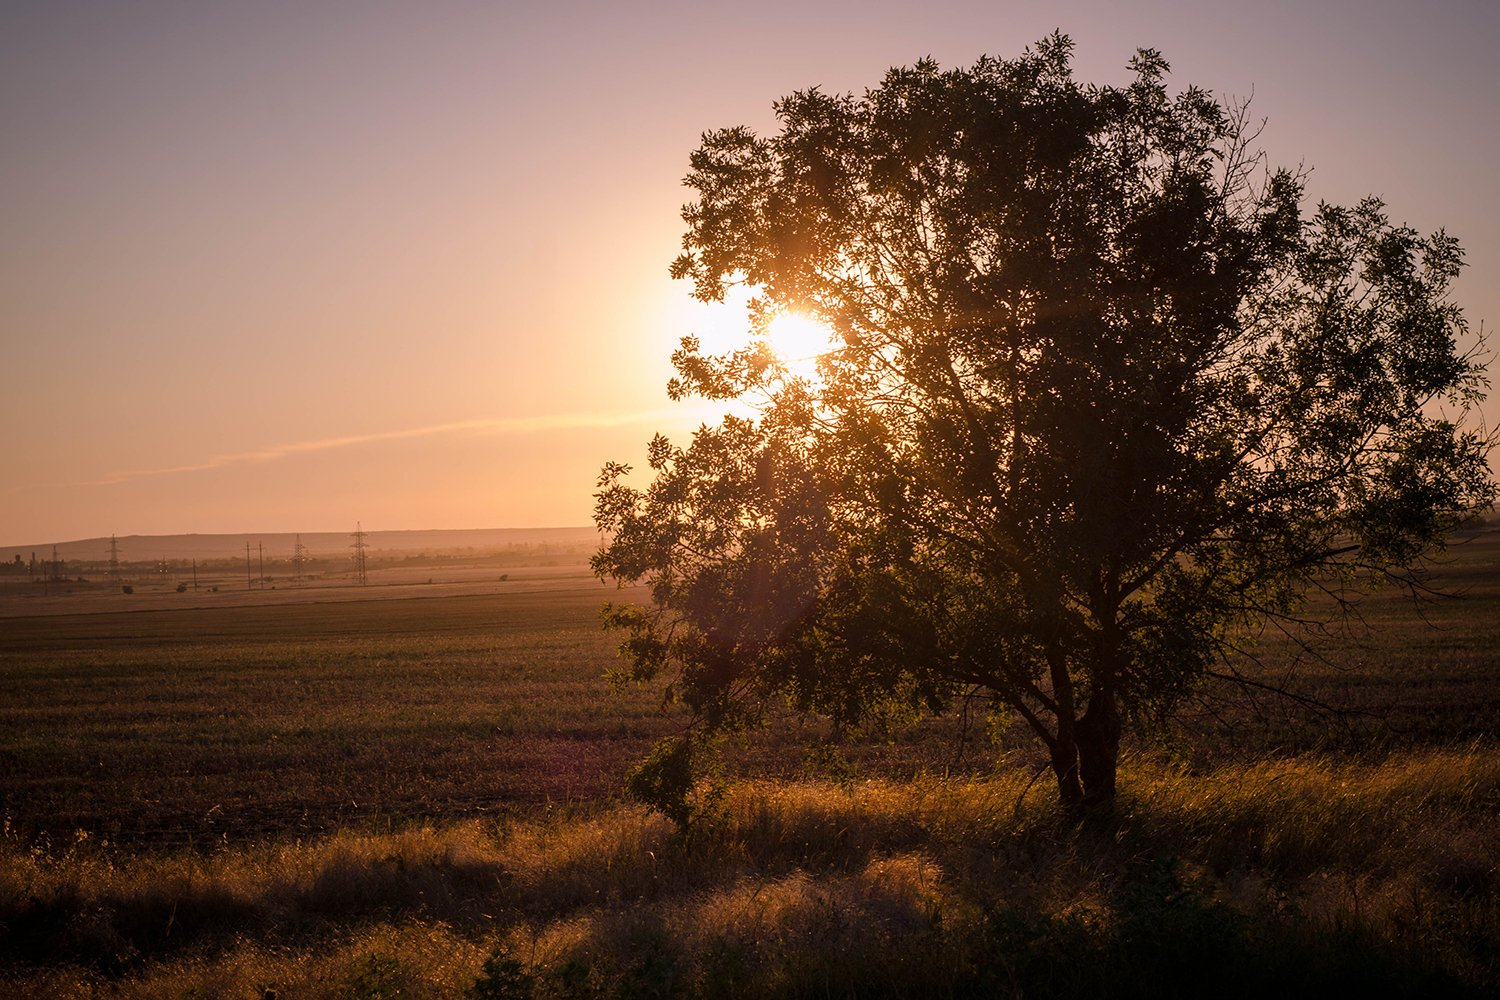 Tree at sunset. Nature. Landscape. example image 1